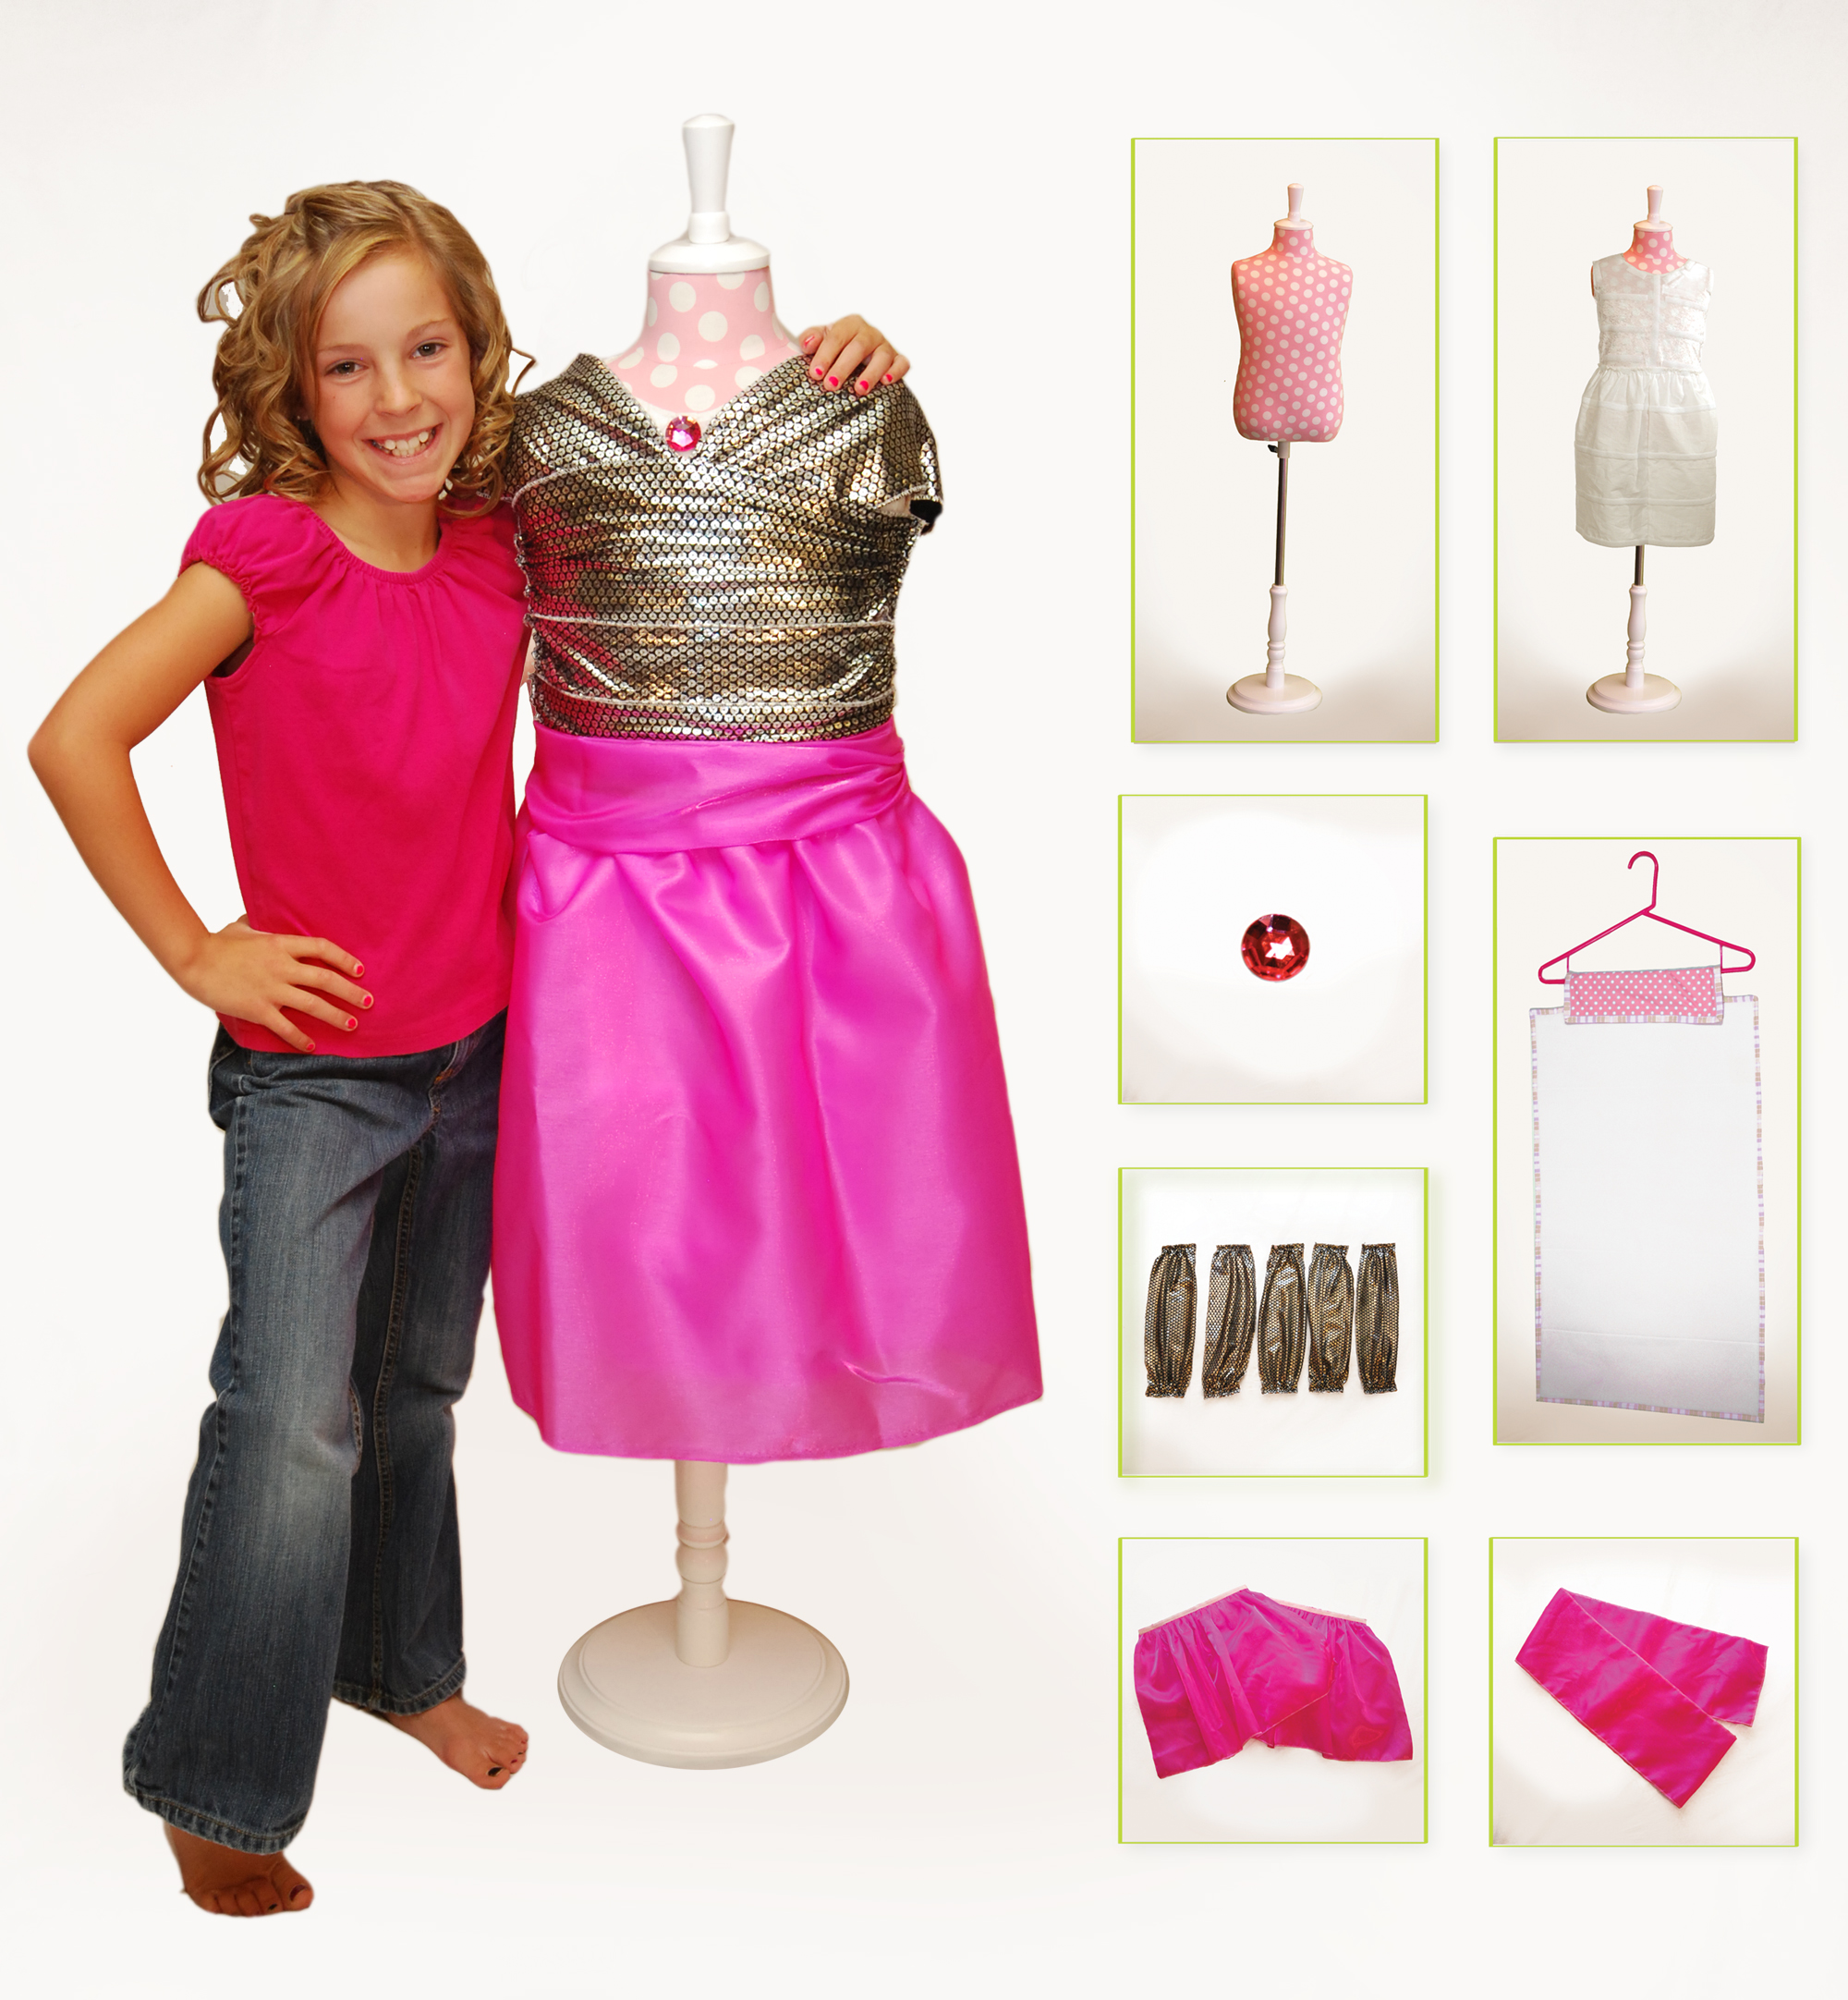 Shailie Revolutionary Dress Up Toy For Girls The